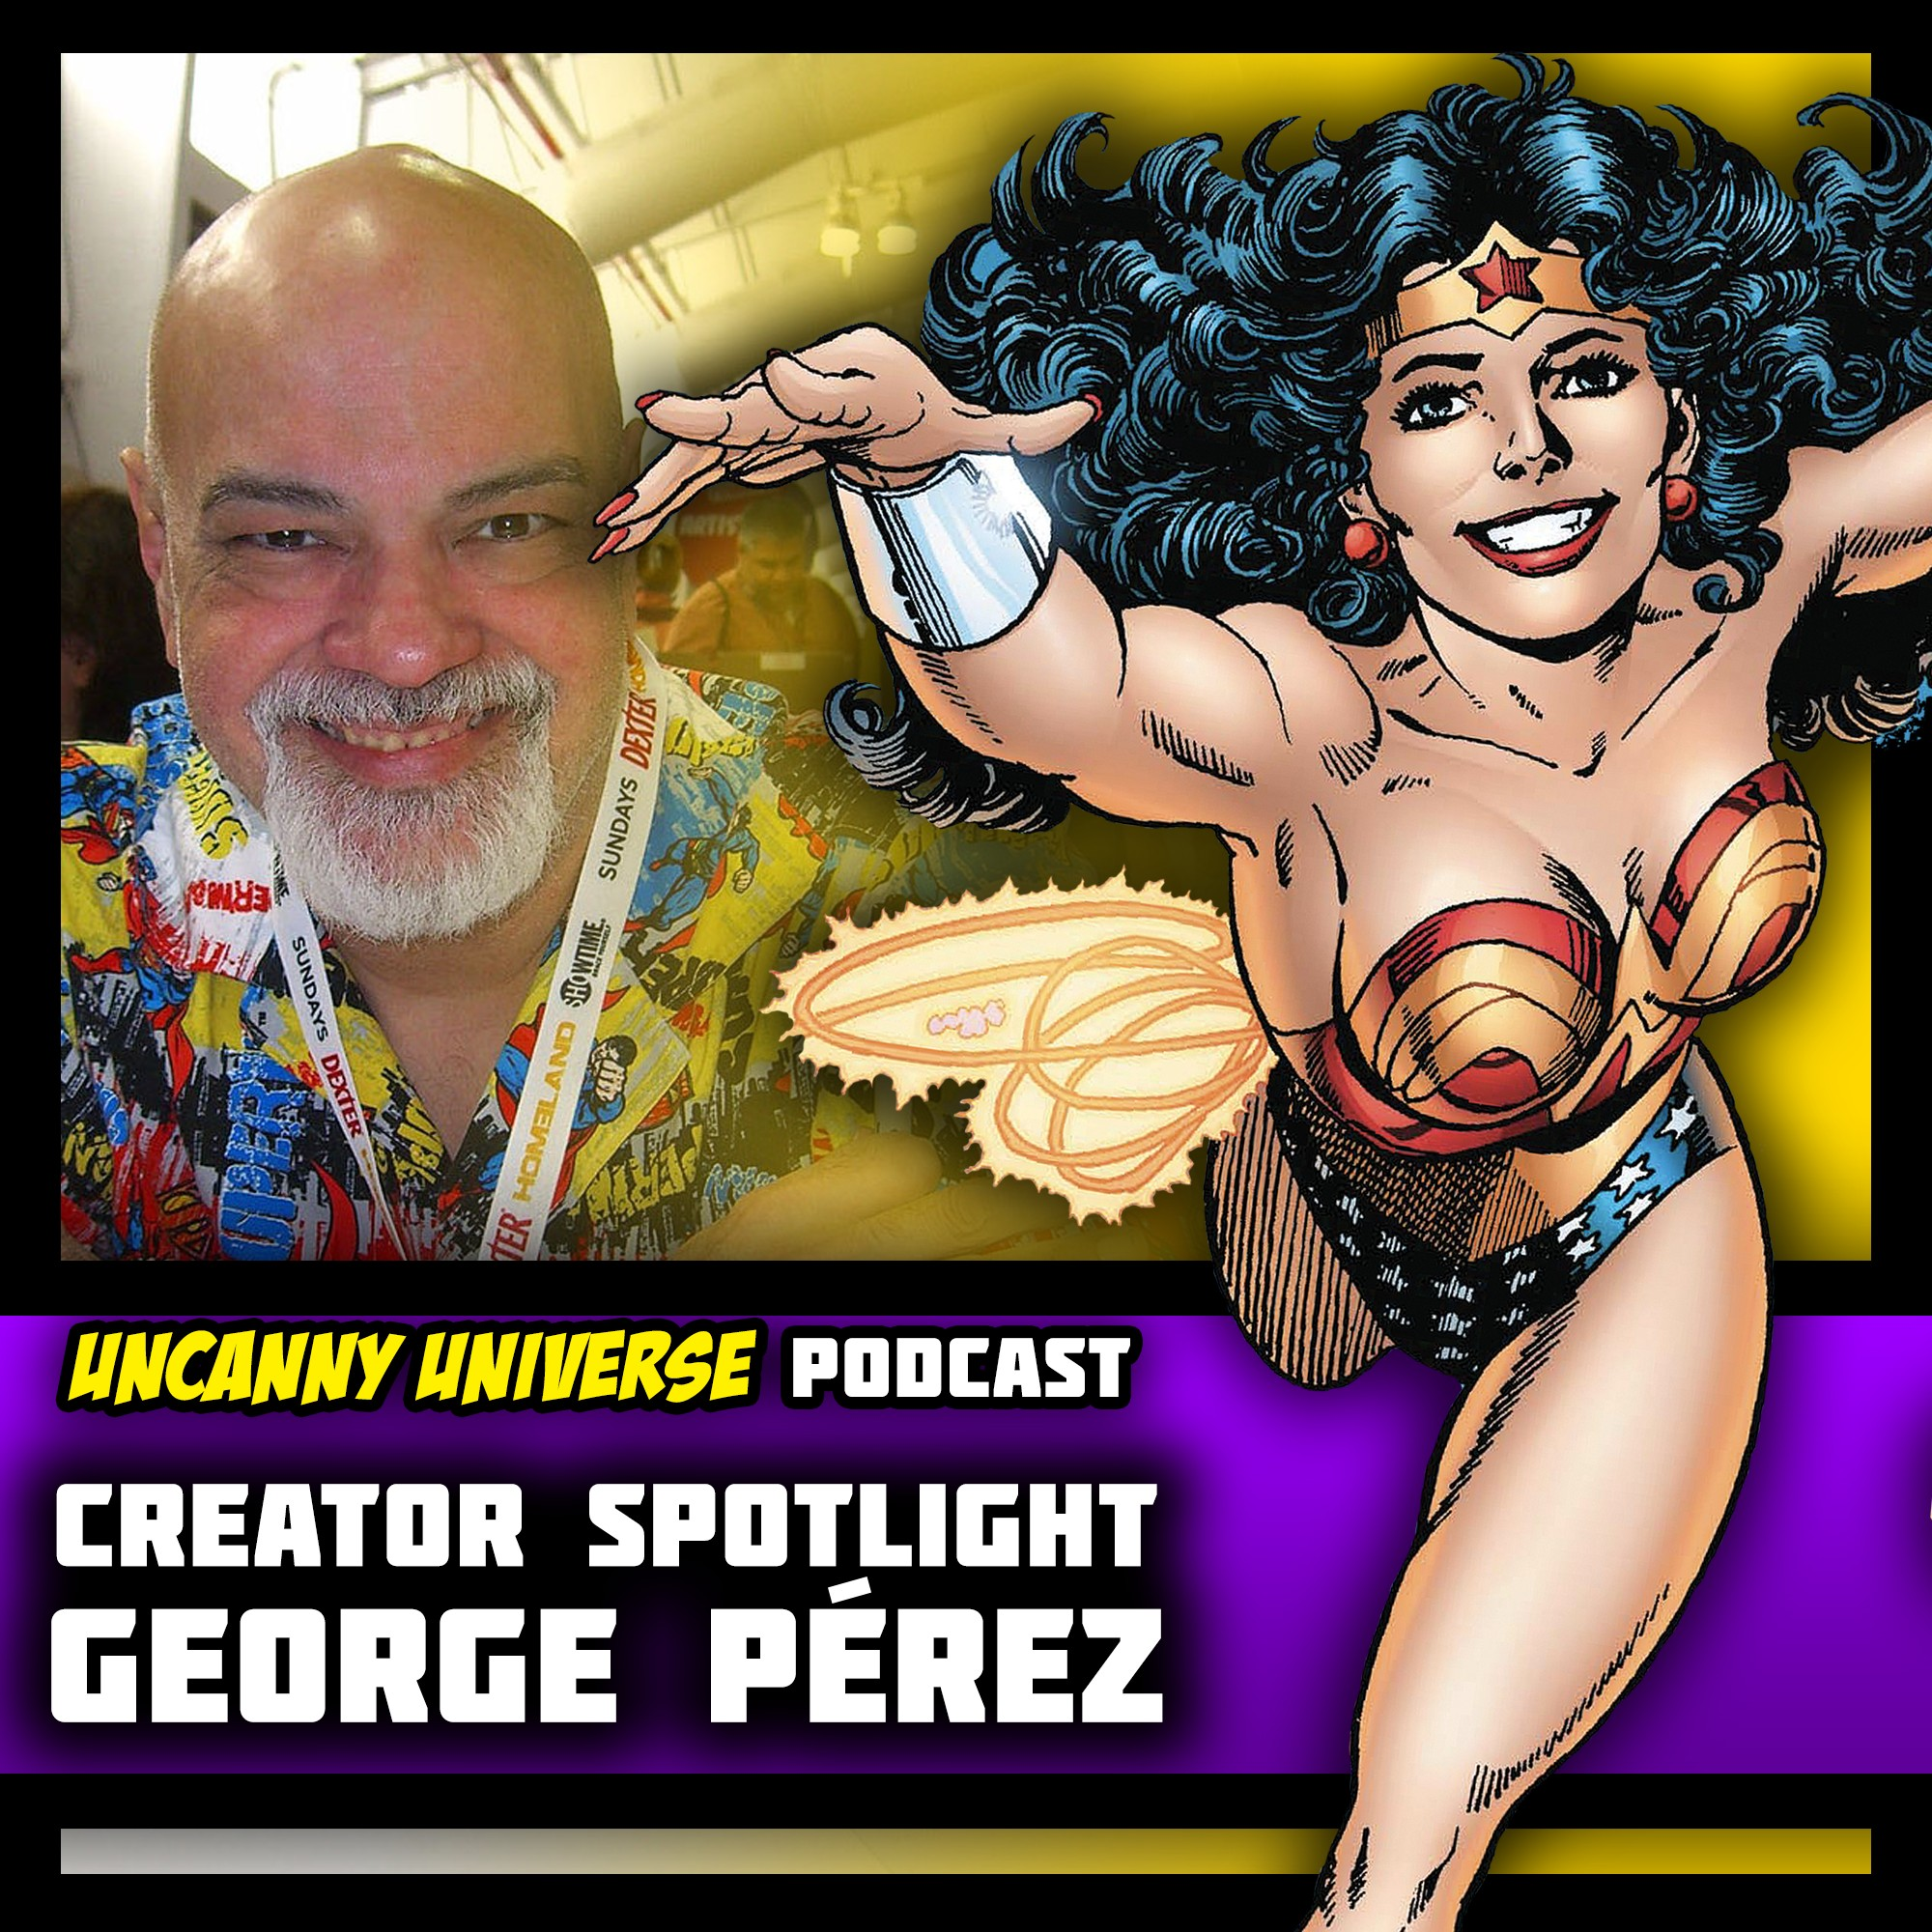 Episode 100 - Creator Spotlight - George Pérez